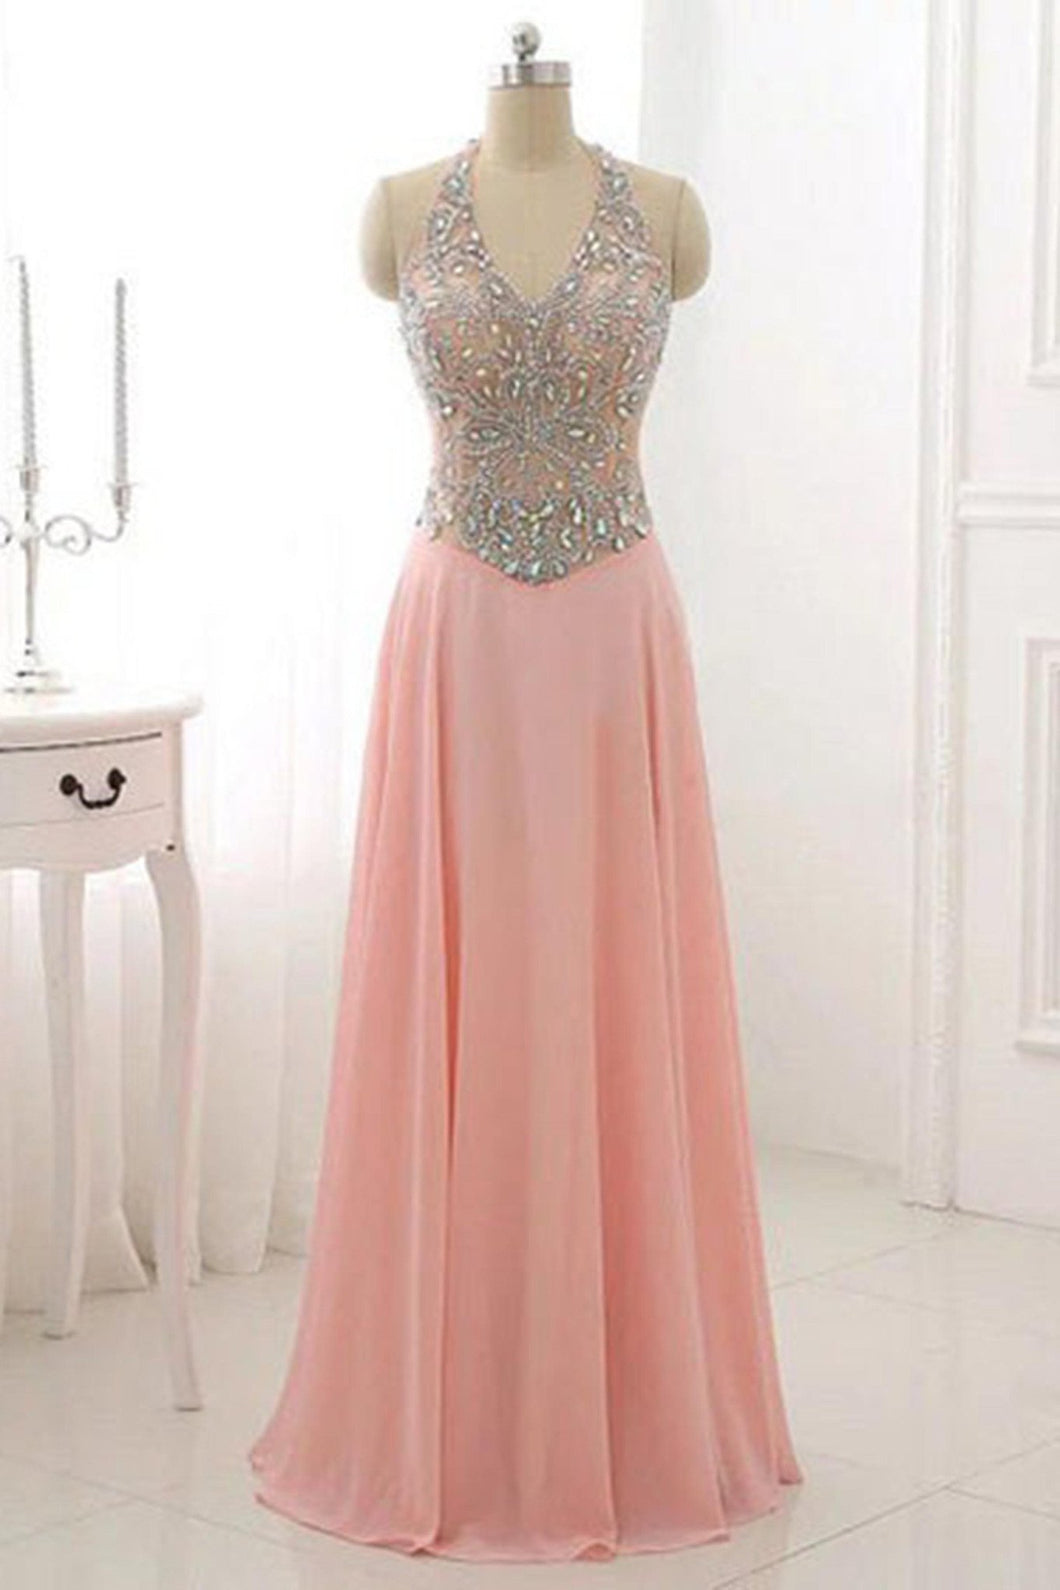 Sweet 16 Dresses | Pink chiffon sequins beading halter A-line long  dresses ,evening dresses